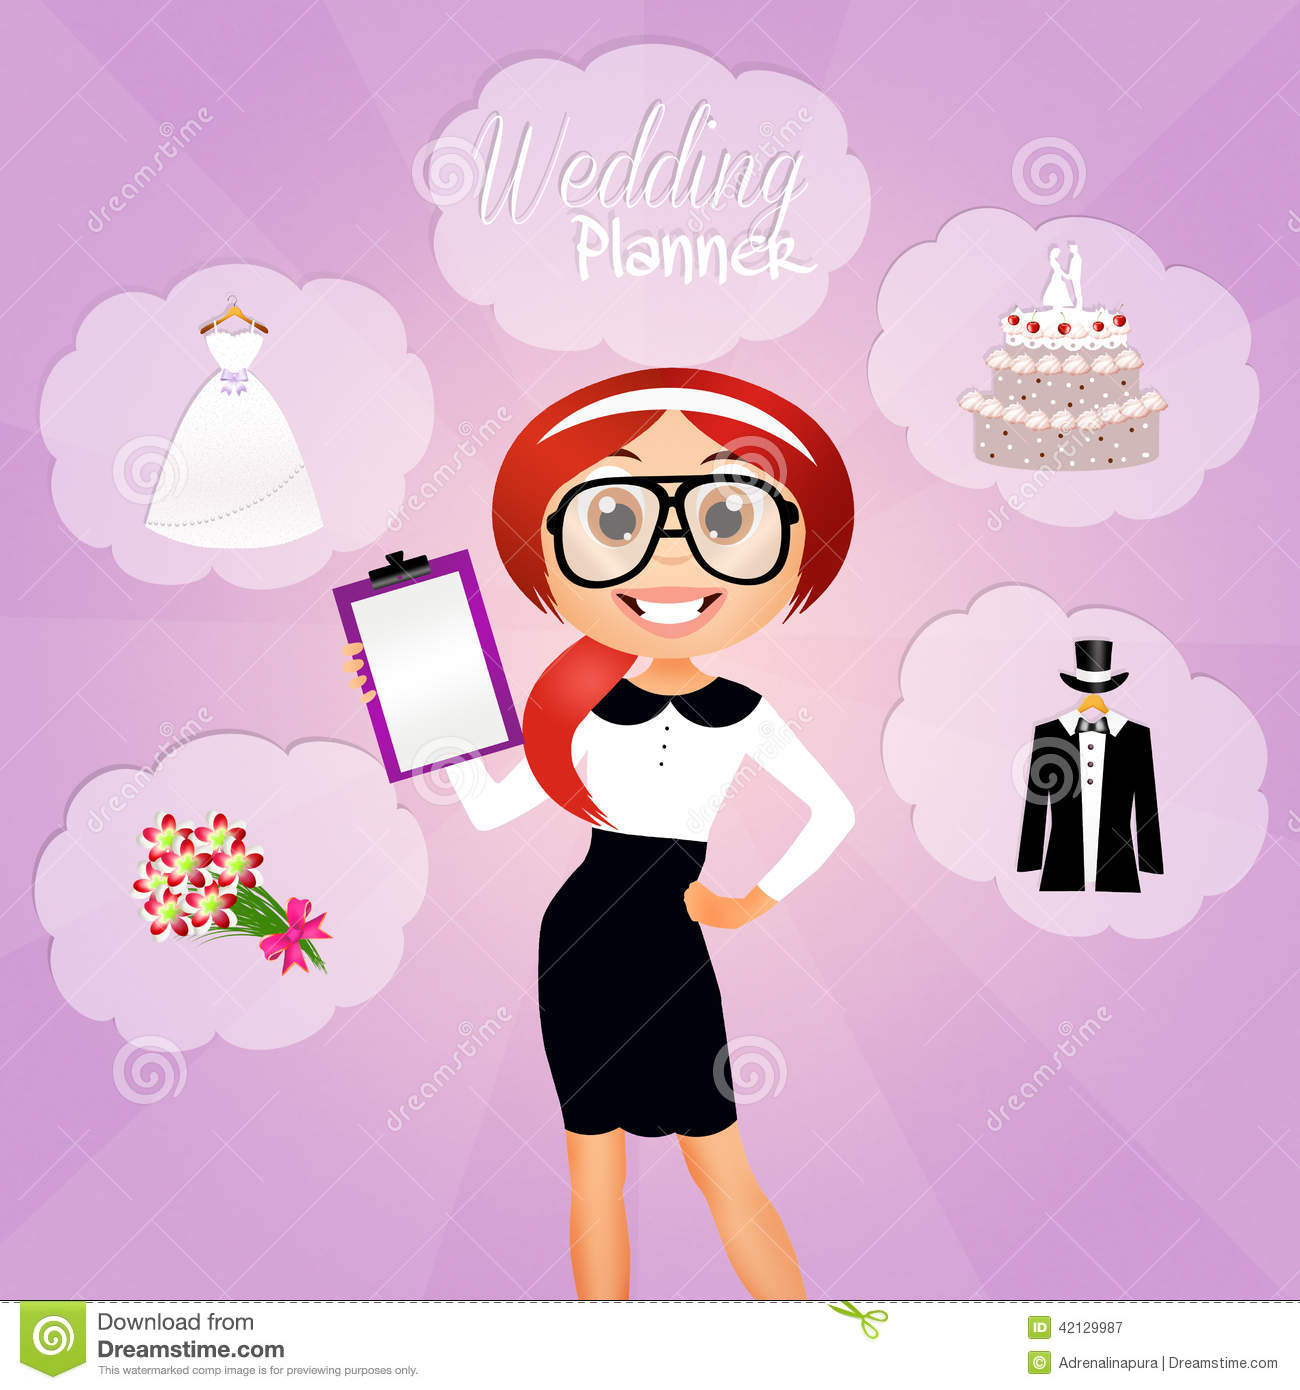 Wedding planner stock illustration illustration of wedding 42129987 download wedding planner stock illustration illustration of wedding 42129987 junglespirit